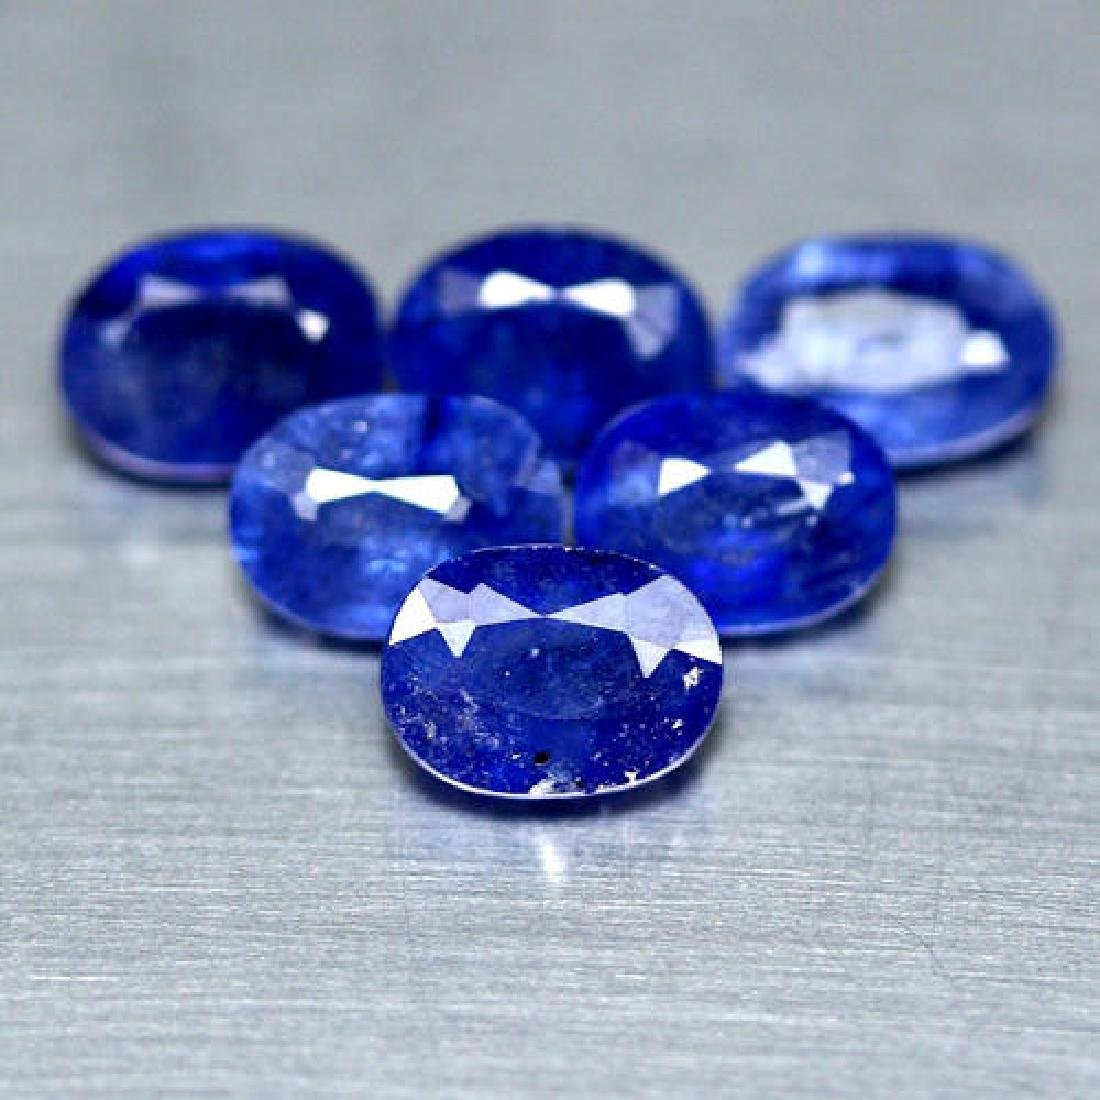 LOT OF 16.00 CTS. OF BLUE MADAGASCAR SAPPHIRE